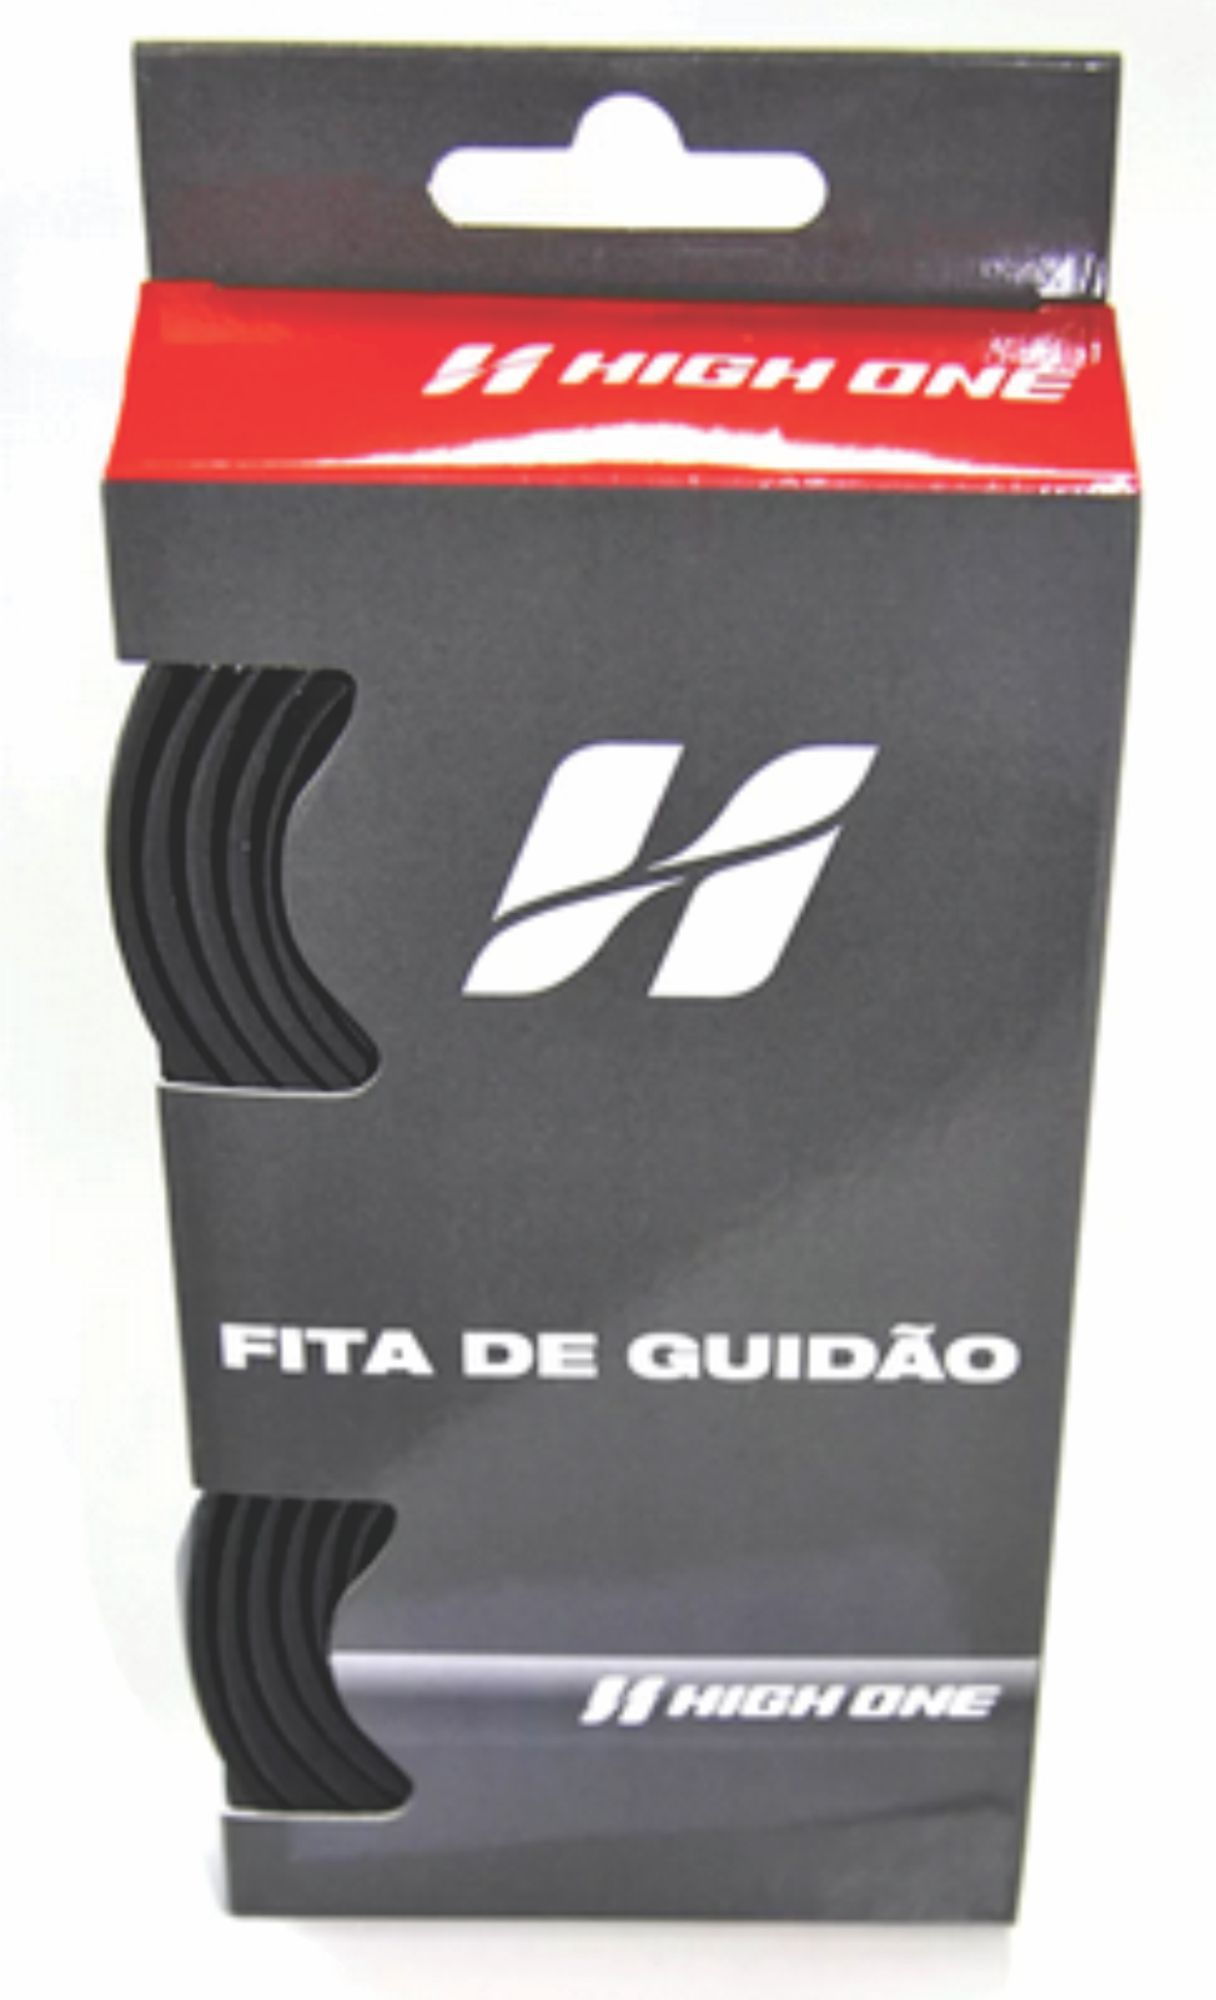 FITA DE GUIDÃO HIGH ONE